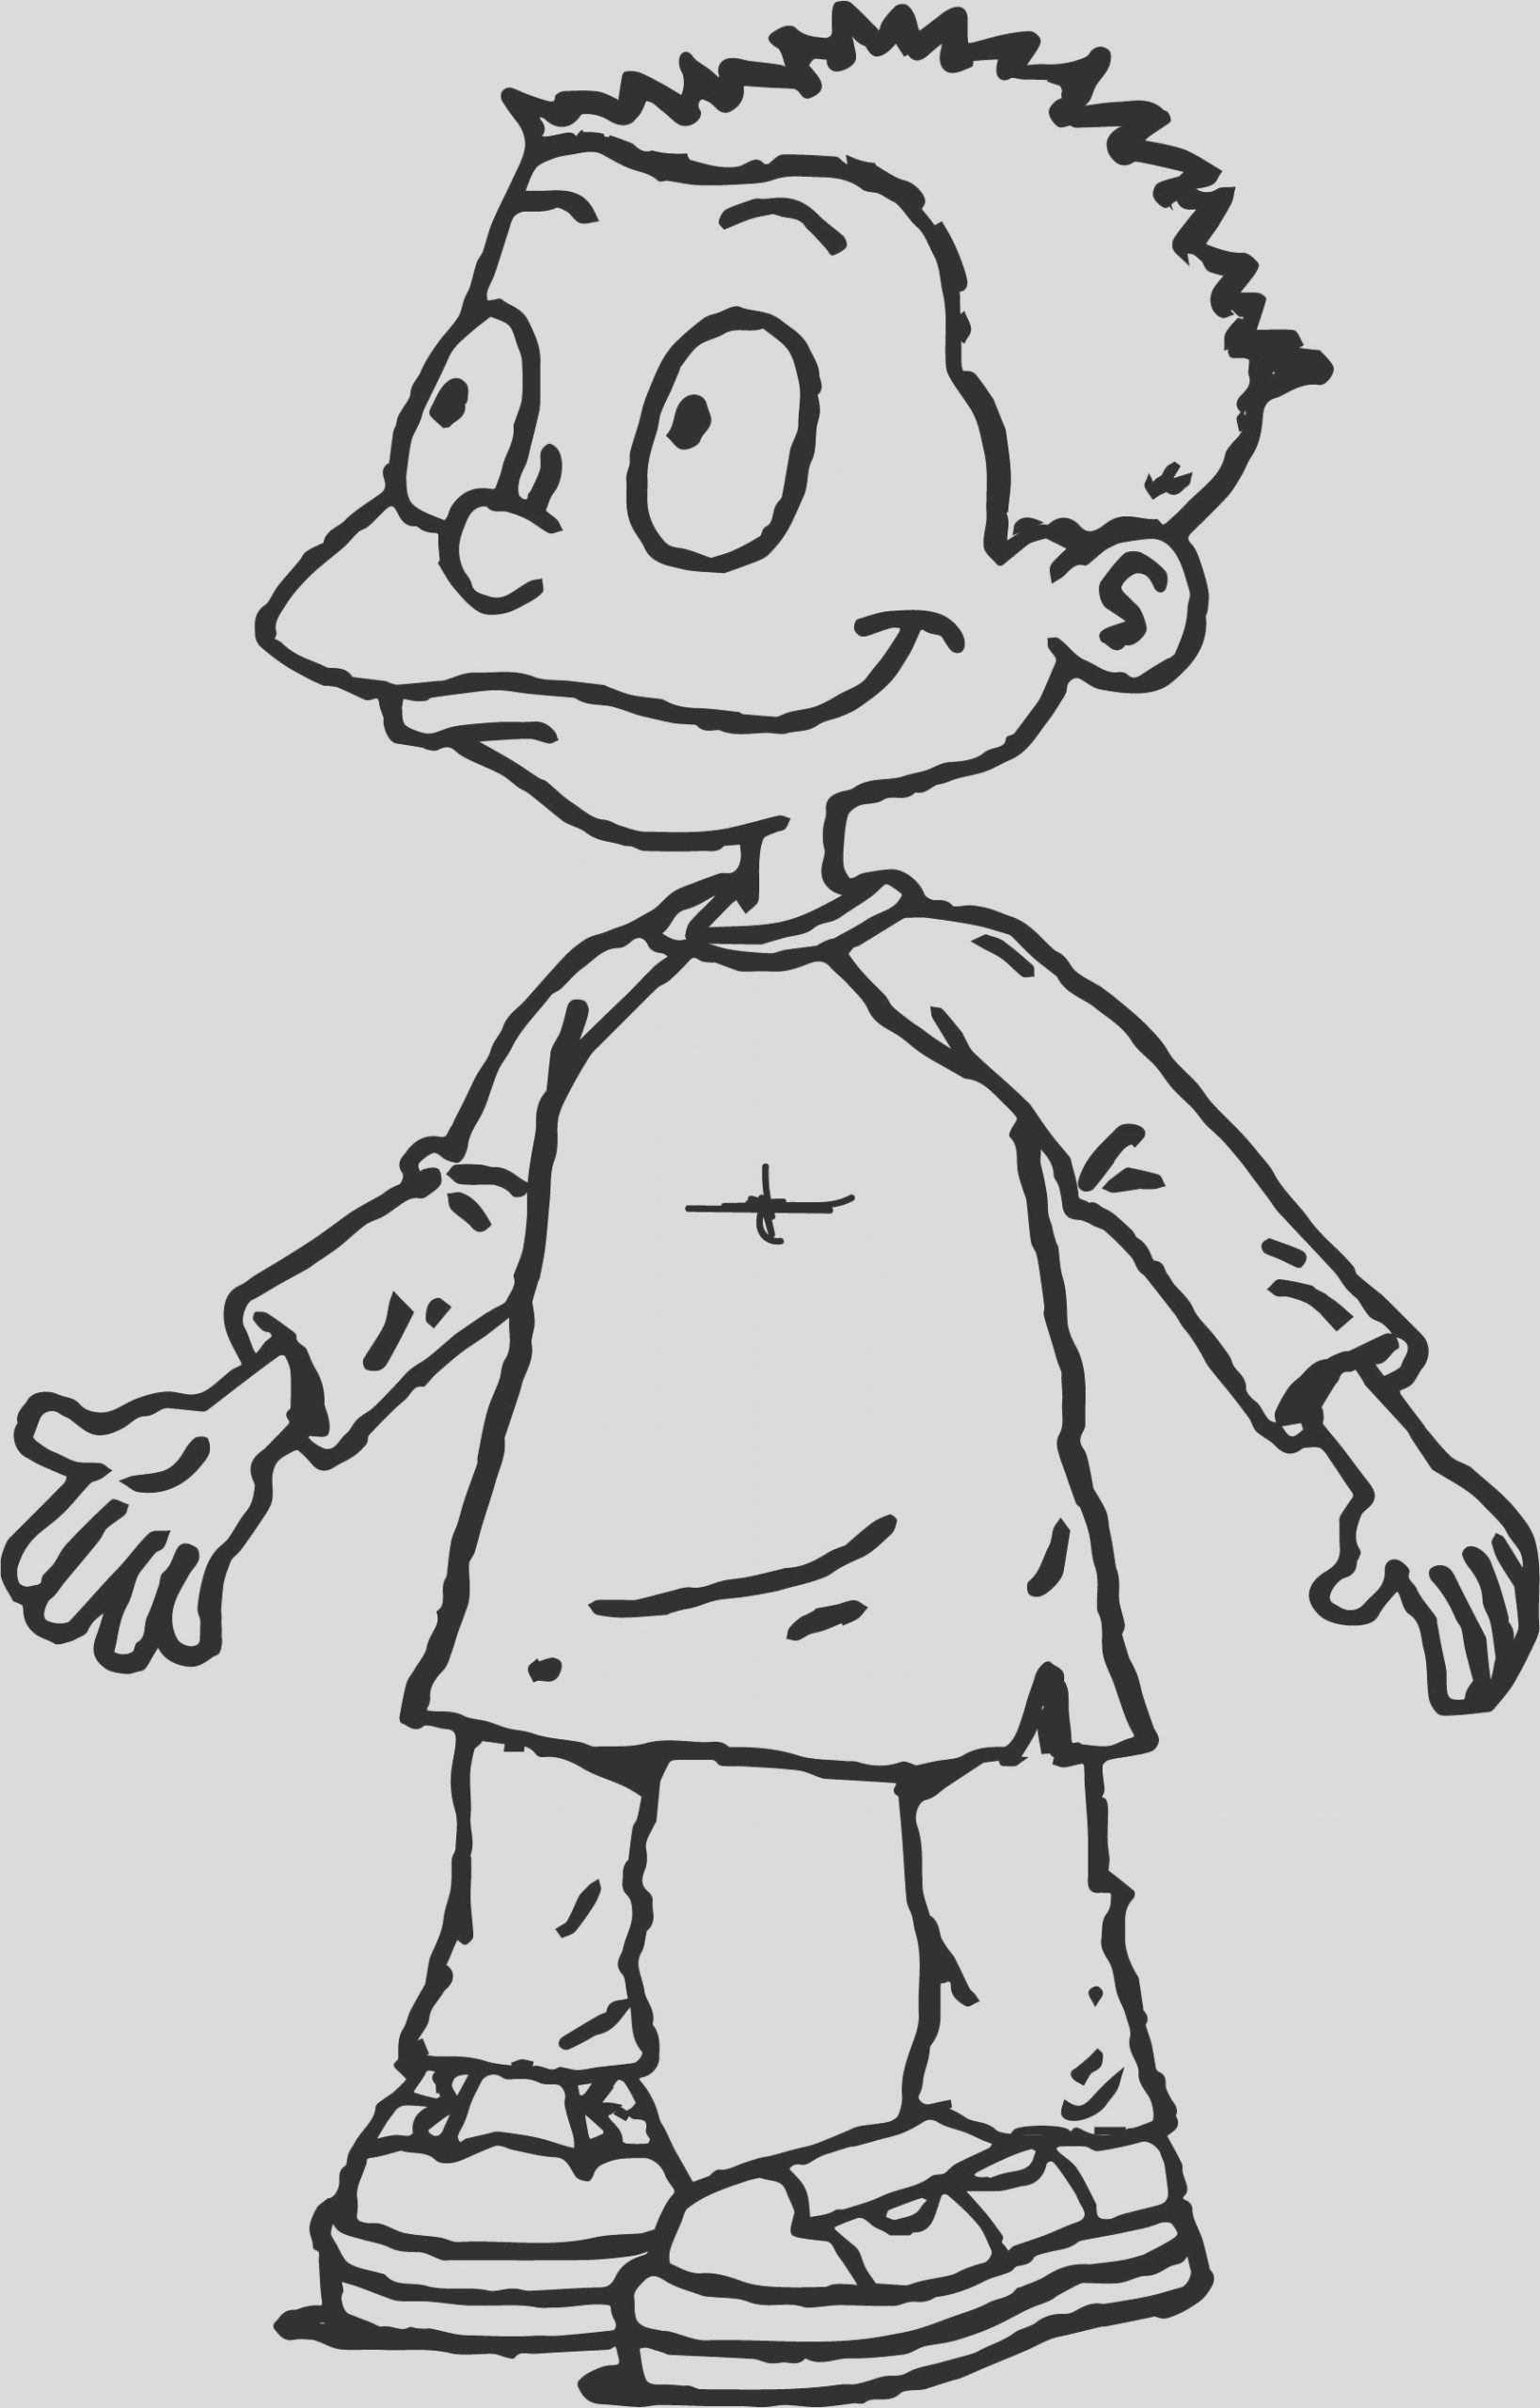 tommy pickles rugrats grown coloring page